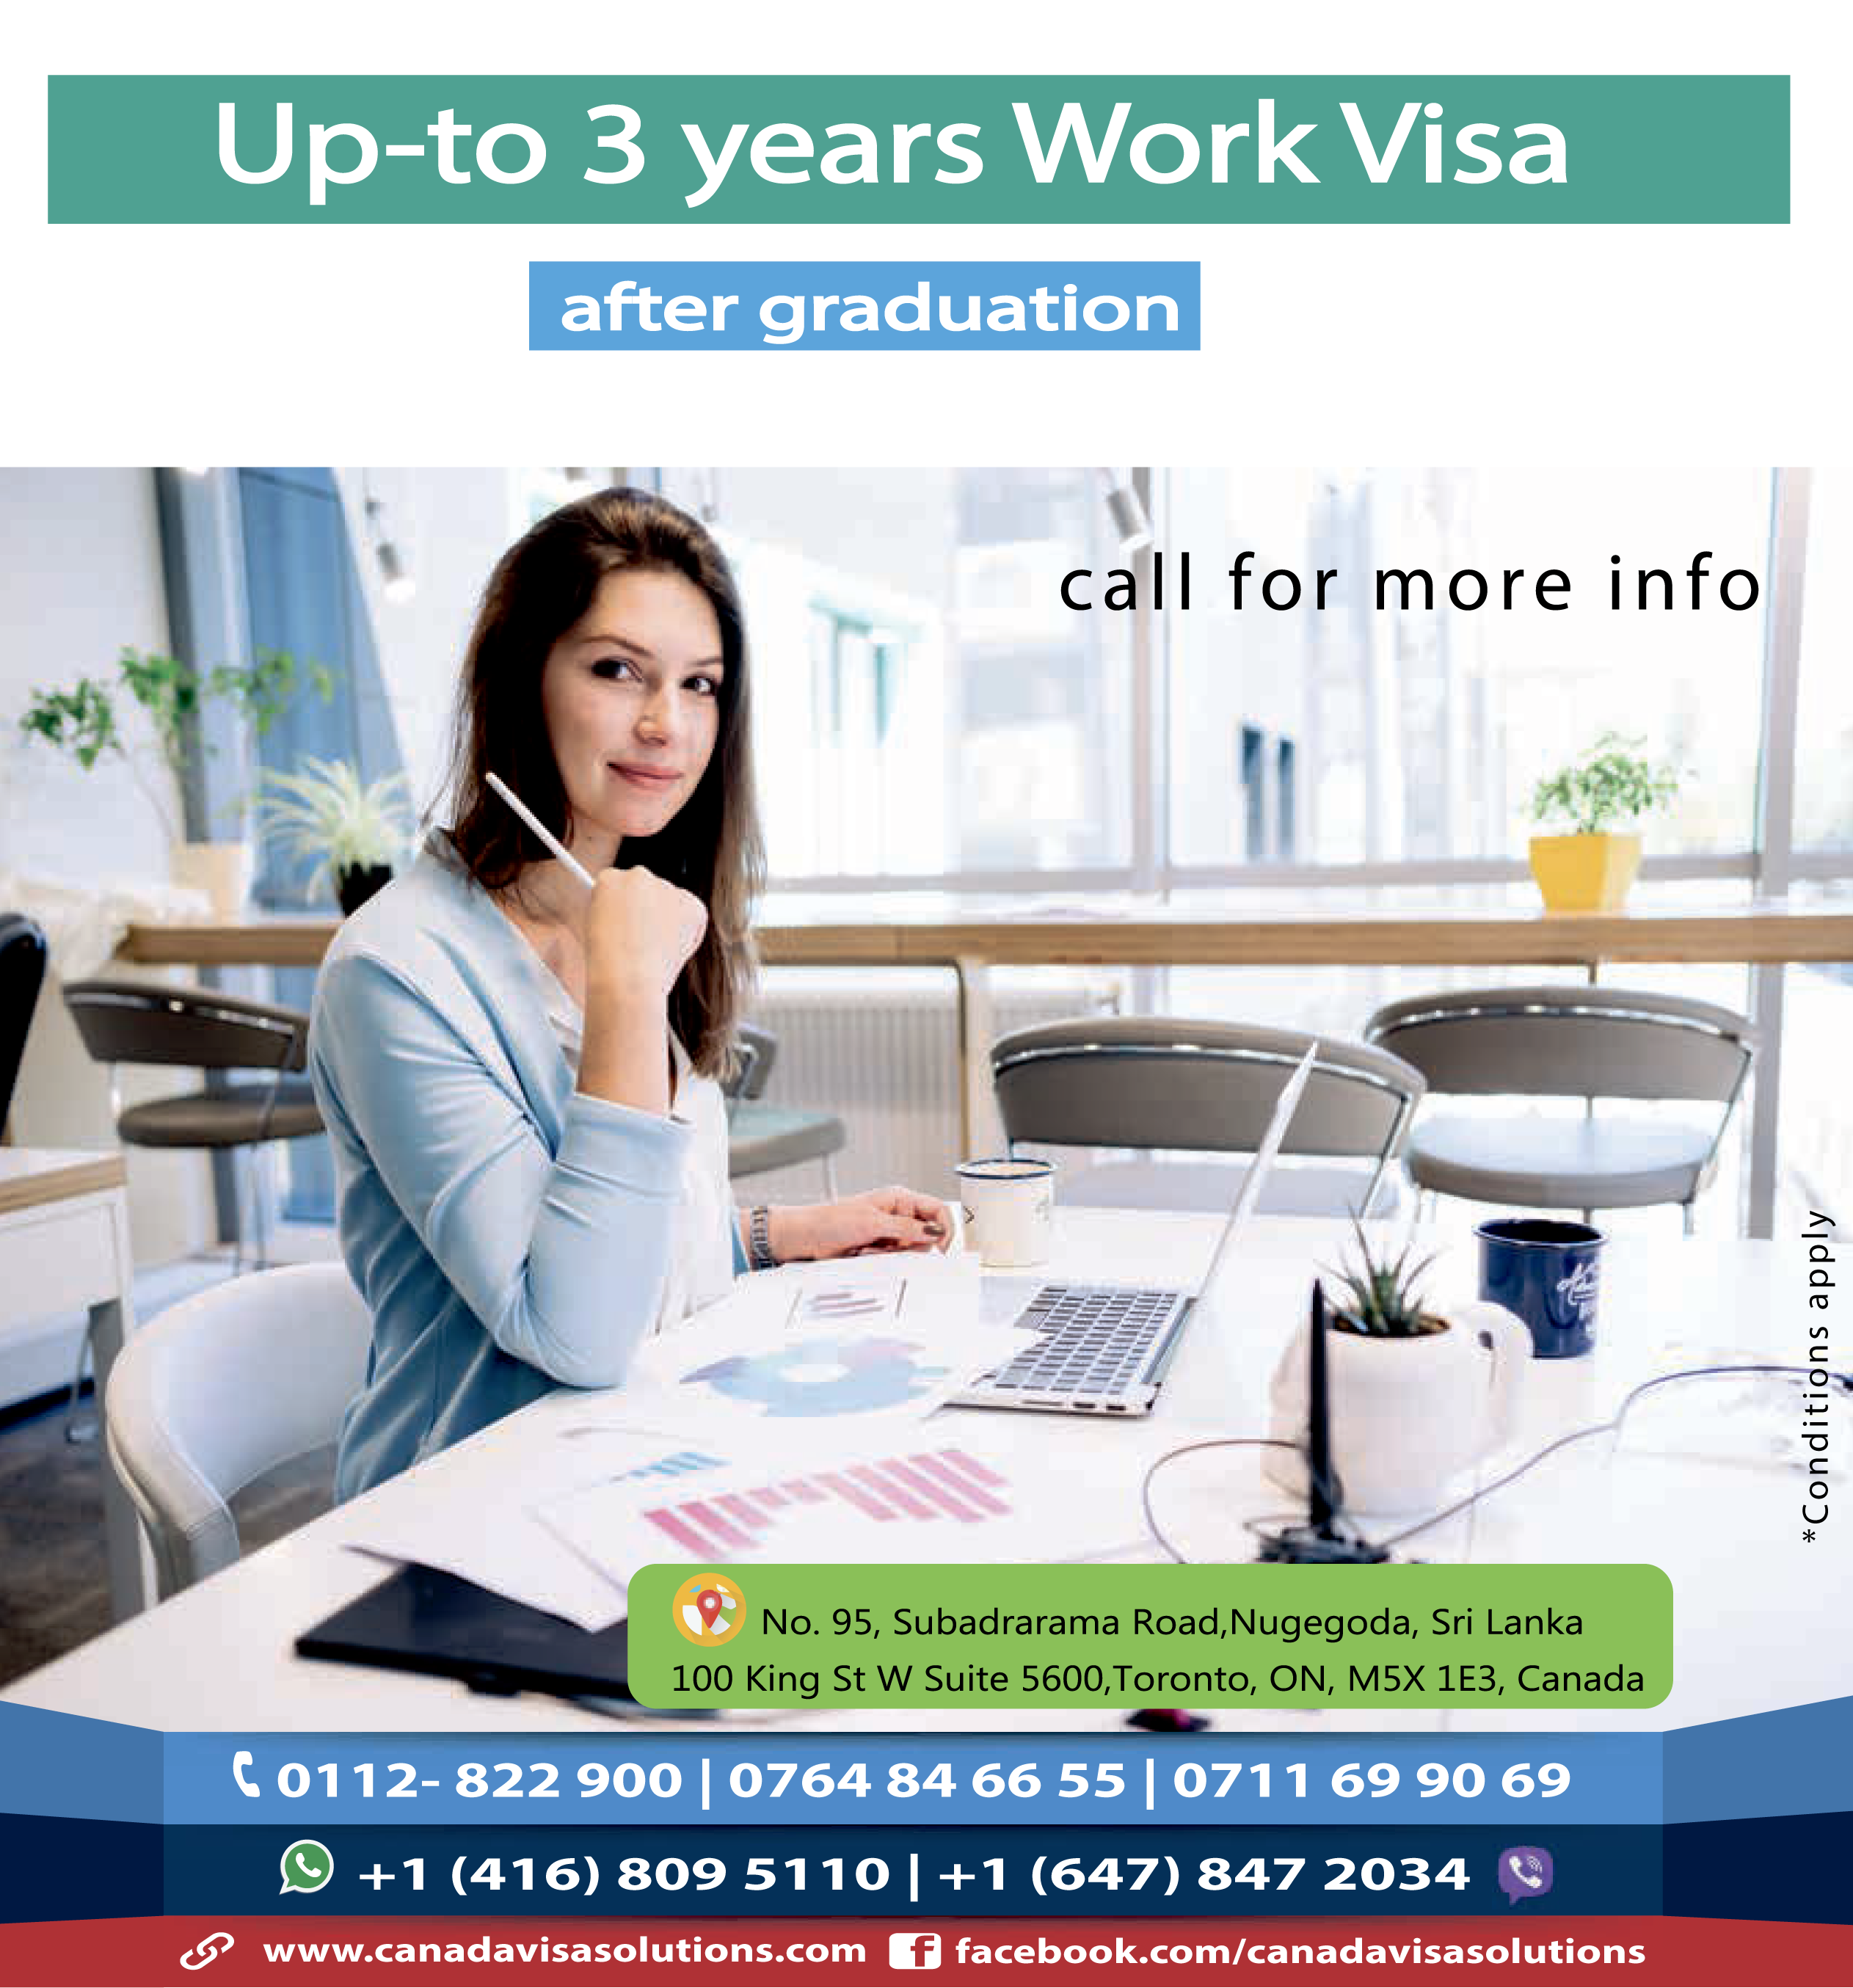 1 Canada Visa Experts from Toronto Immigrate Canada